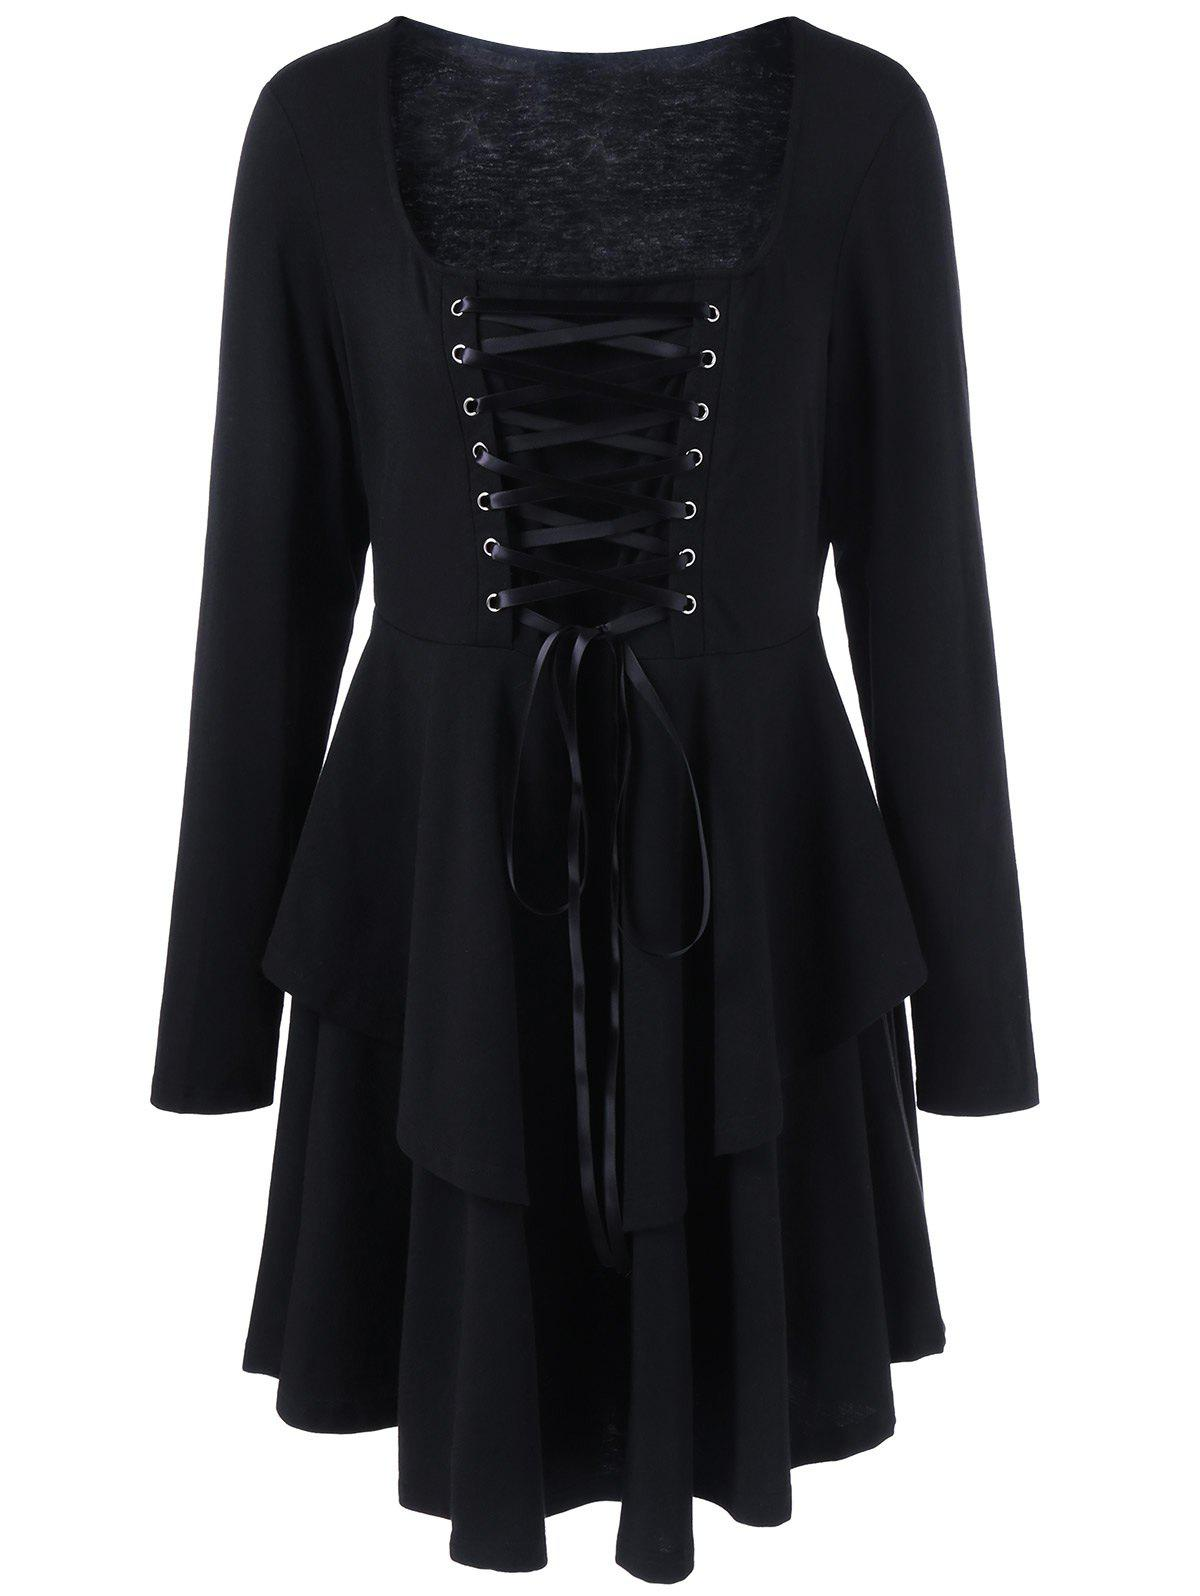 Plus Size Lace-Up Bodice Layered Flare DressWOMEN<br><br>Size: XL; Color: BLACK; Style: Lolita; Material: Polyester,Spandex; Silhouette: A-Line; Dresses Length: Knee-Length; Neckline: Square Collar; Sleeve Length: Long Sleeves; Embellishment: Criss-Cross; Pattern Type: Solid; With Belt: No; Season: Fall,Spring; Weight: 0.3700kg; Package Contents: 1 x Dress;